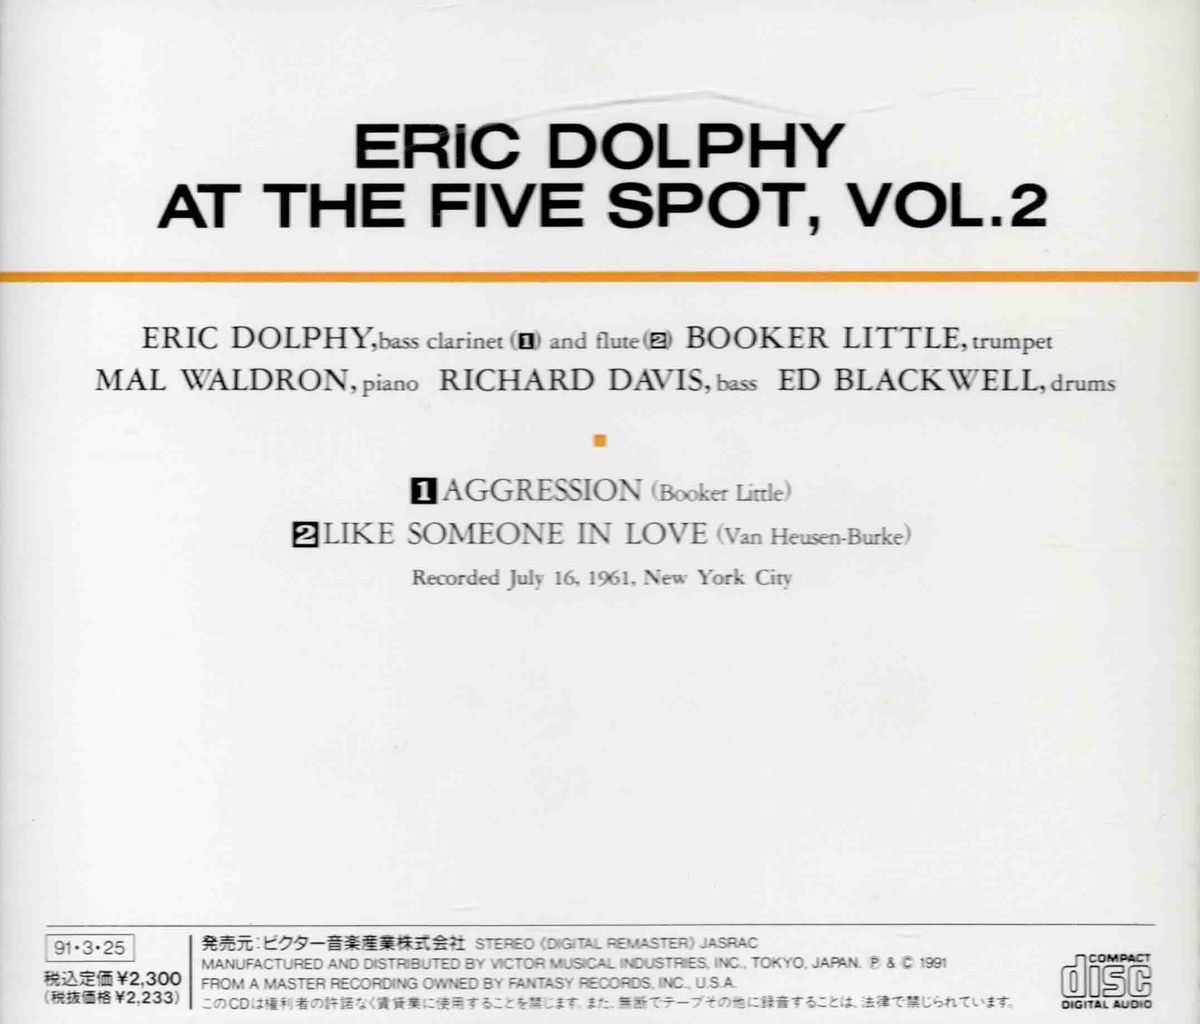 ERIC DOLPHY AT THE FIVE SPOT, VOL.2-2